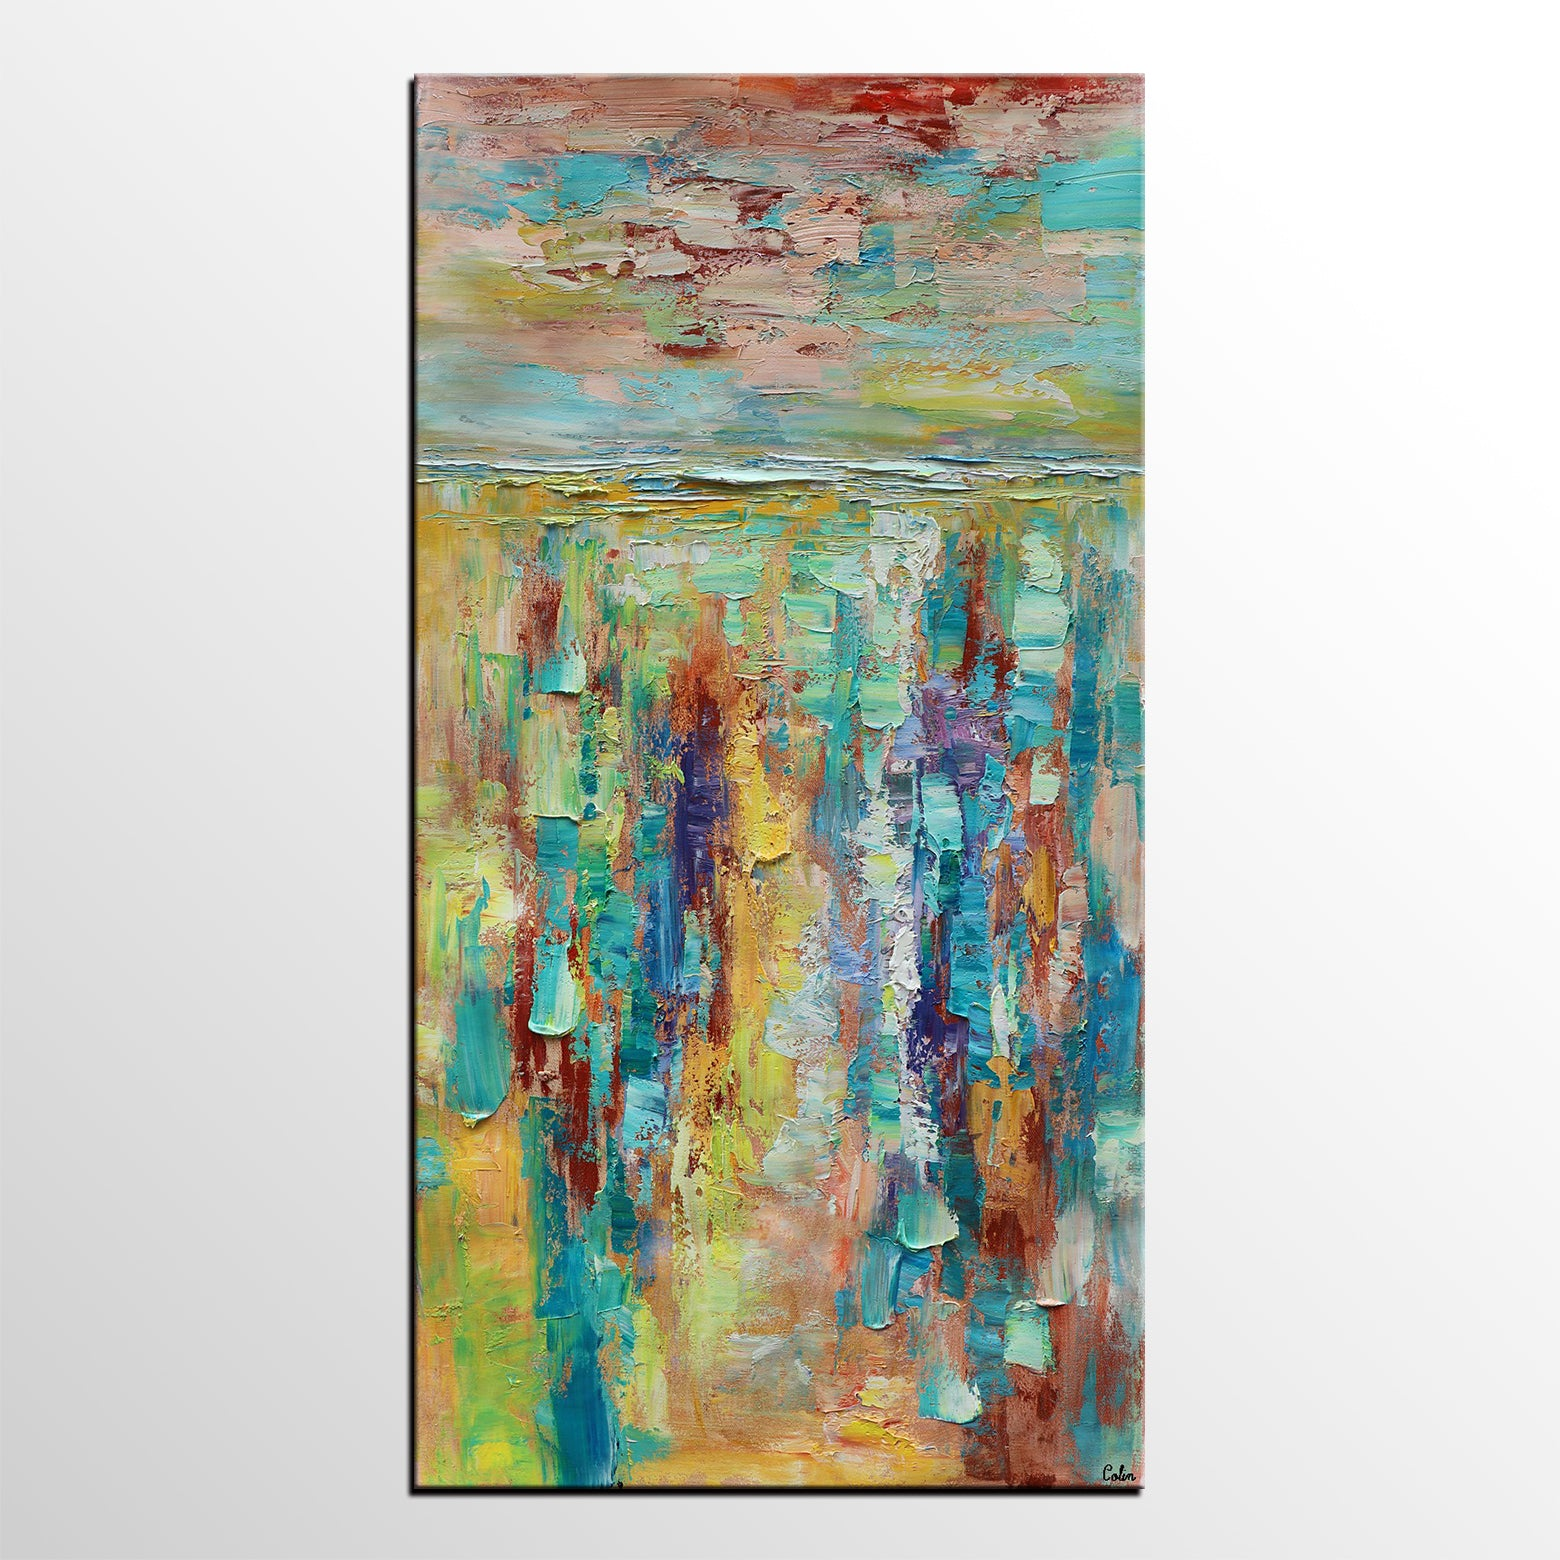 Abstract Art Painting, Wall Painting, Original Painting, Canvas Art, Custom Extra Large Painting - artworkcanvas